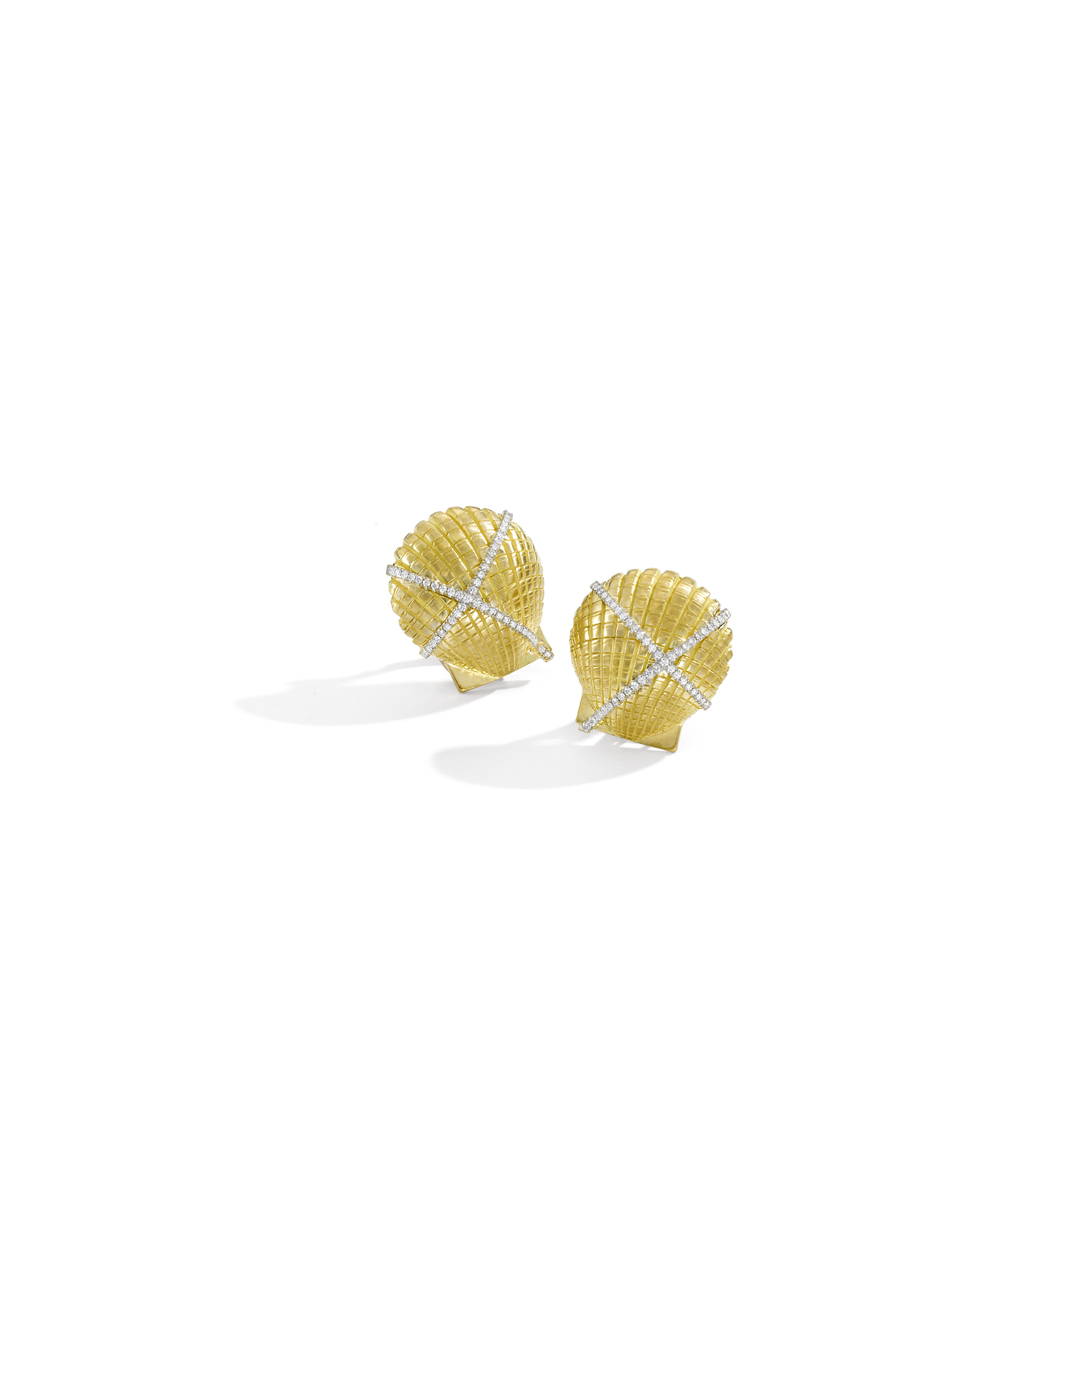 mish_products_earrings_Cabana-Scallop-Tassel-ER-3